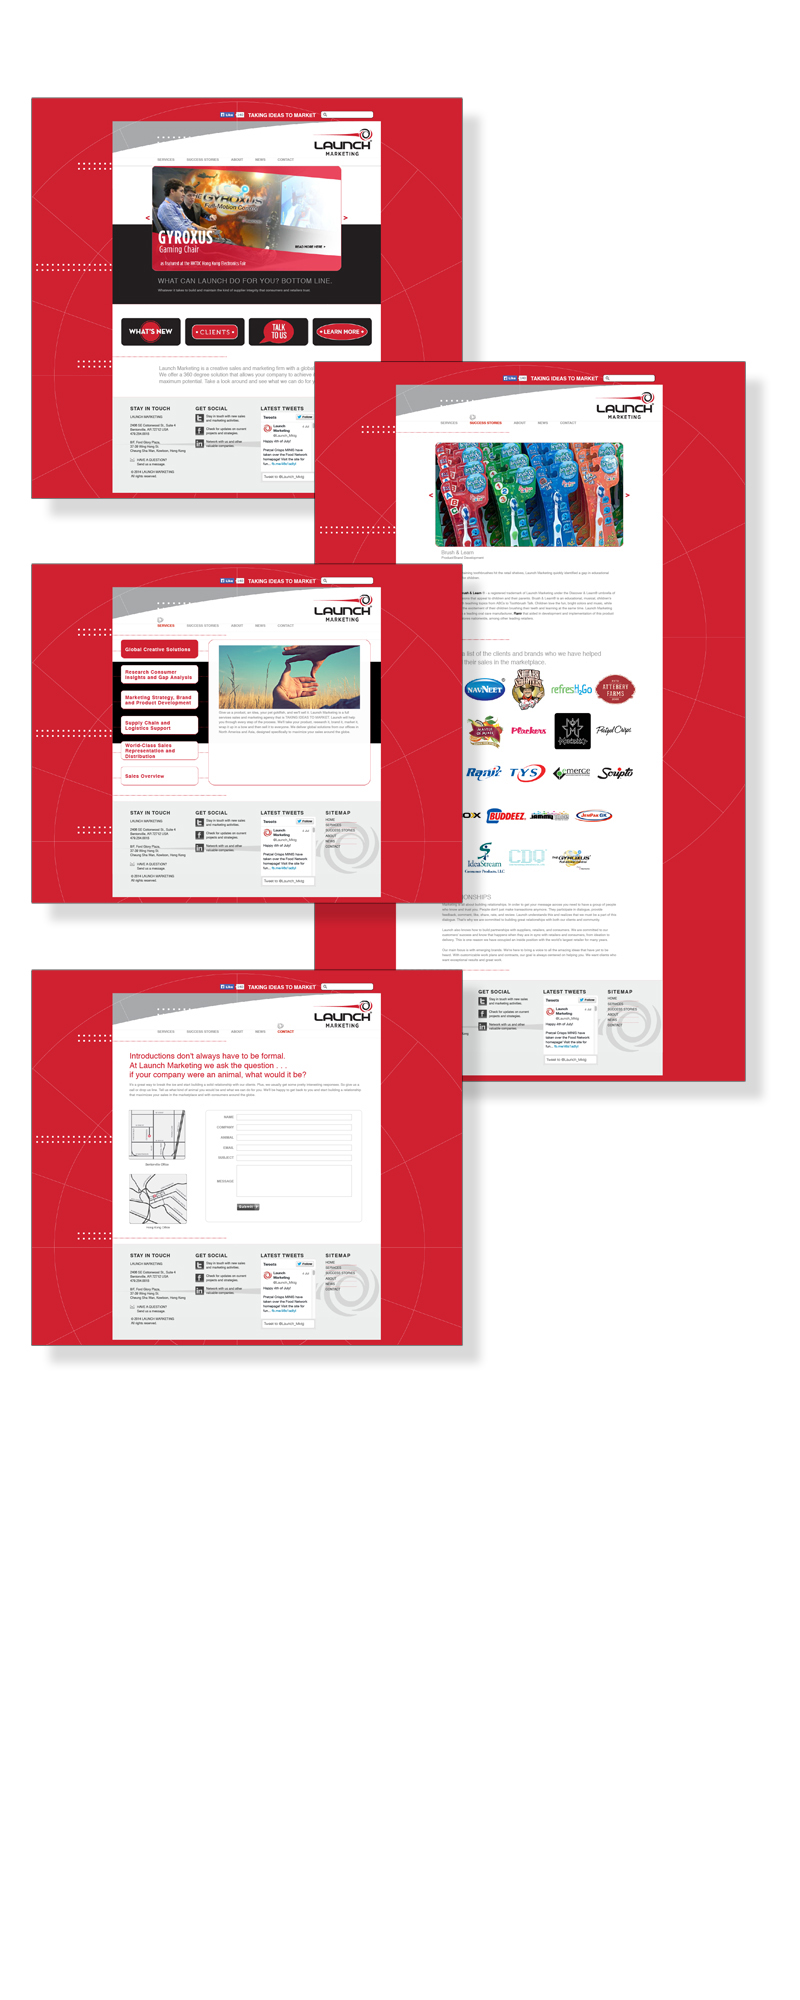 launch-pages-tmoss-portfolio.jpg